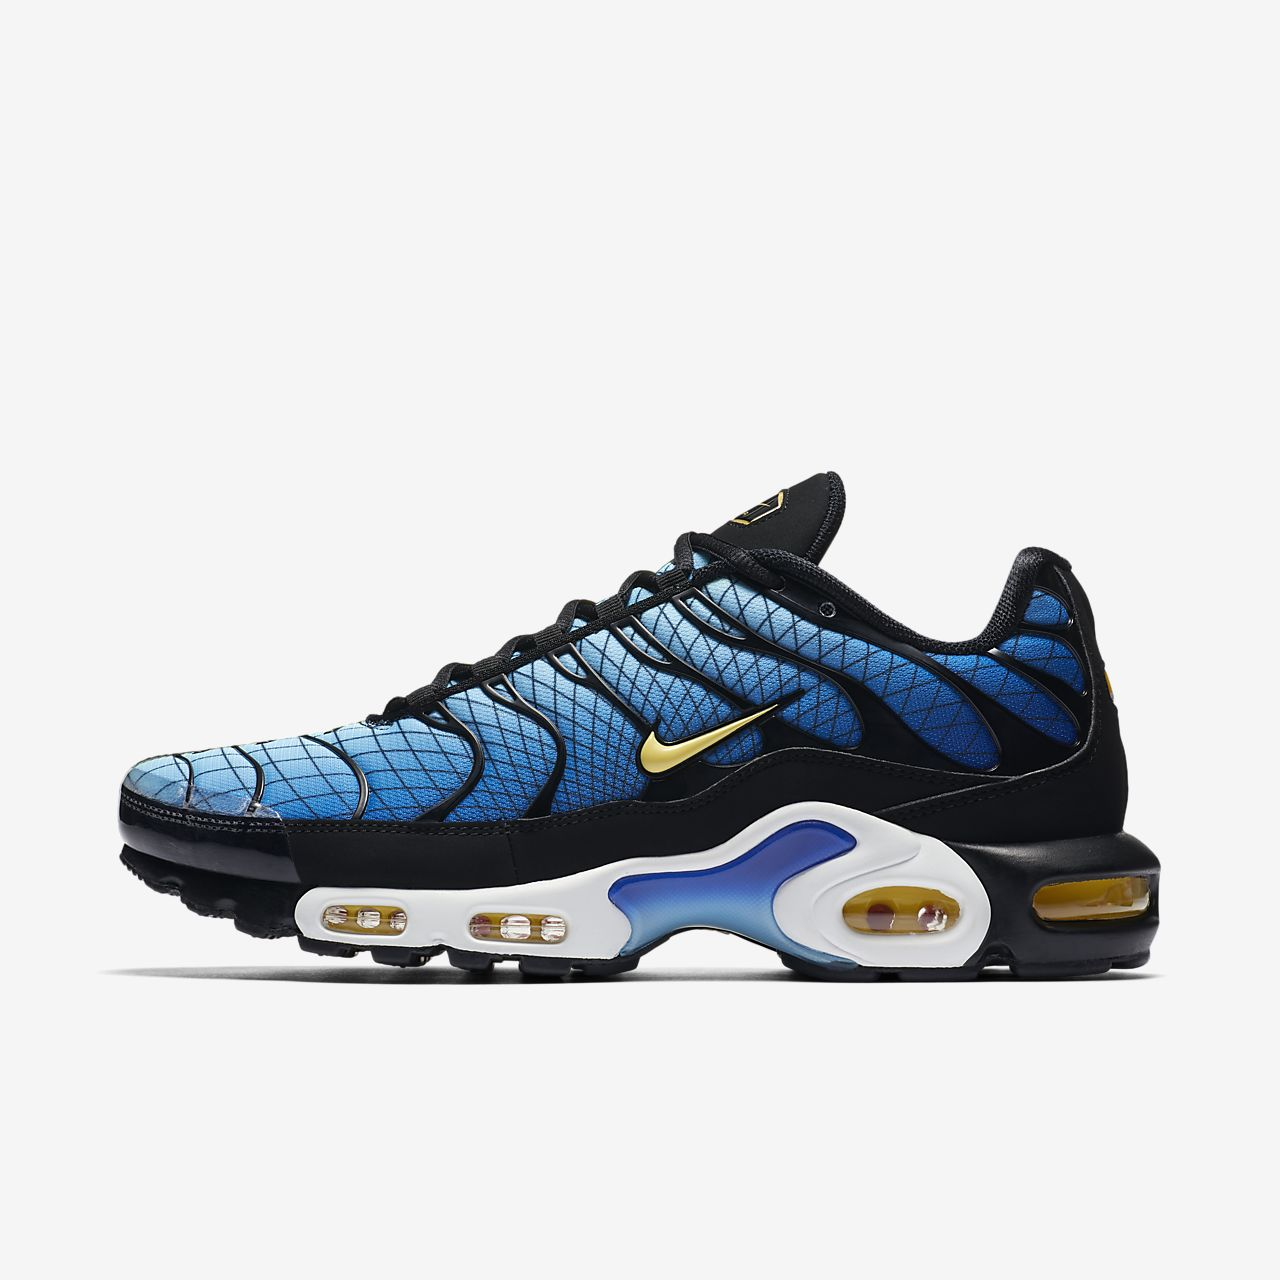 3de550392a5 Nike Air Max Plus TN SE Men s Shoe. Nike.com GB